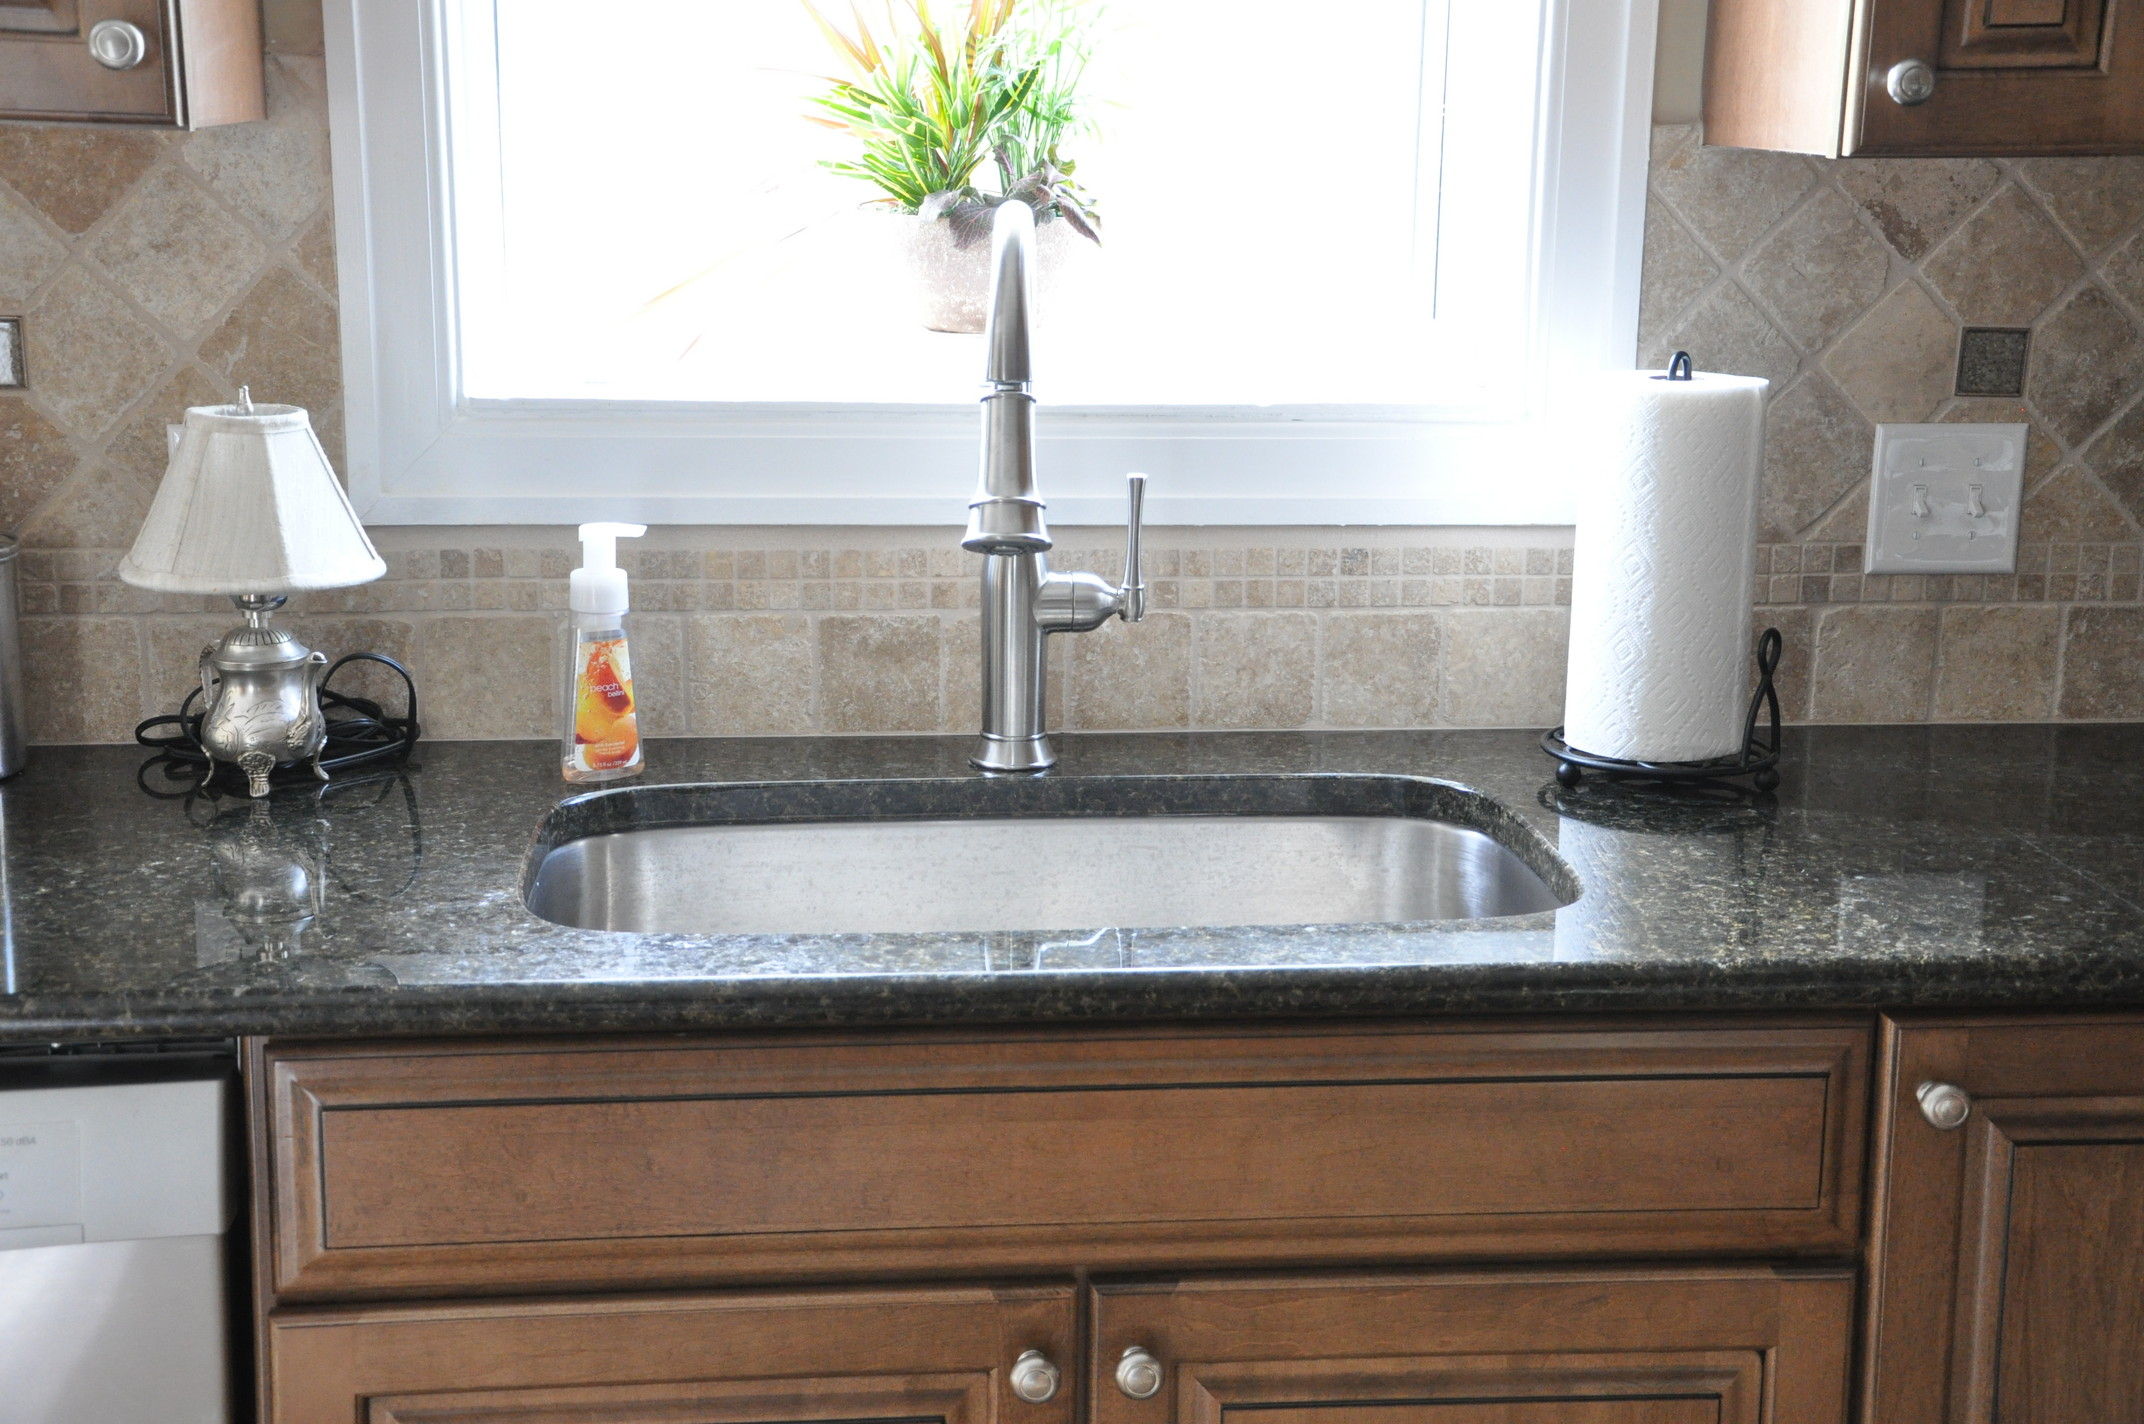 Backsplash With Uba Tuba Granite Countertop Kitchen Granite Countertops Cityrock Countertops Inc